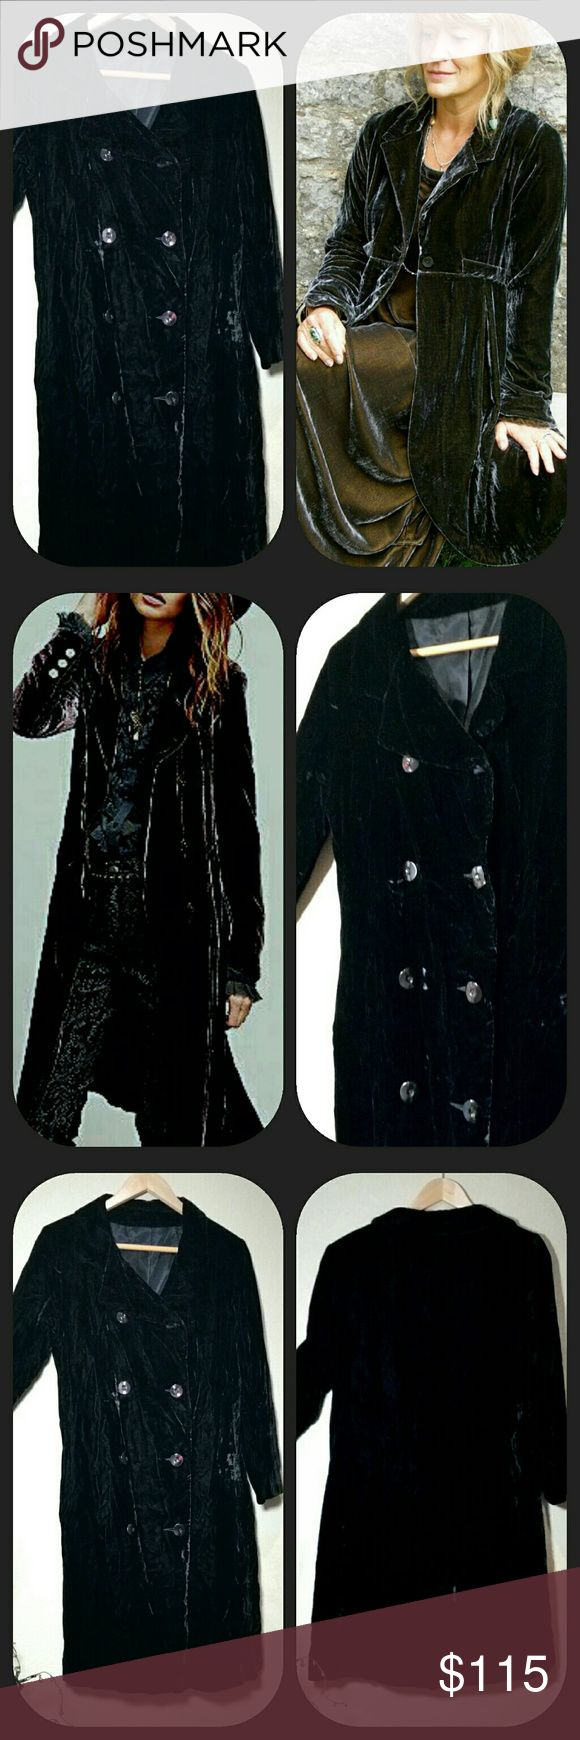 """Black Velvet Duster Victorian Goth Opera Coat Vintage Black Velvet Duster Scoop Coat Opera Coat.  Soft. Lush Silk Rayon Velvet Opera Jacket, double breasted, six buttons. No identification labels.  Beautiful condition... sexy, glamorous. Dress for date night, holiday or dress down with jeans. Best fit S - M Measurements taken flat: Pit to pit 18"""" Waist 18"""" Shoulder to cuff 22"""" Shoulders 17"""" Collar to hem 39"""" Like new condition. Vintage Jackets & Coats"""